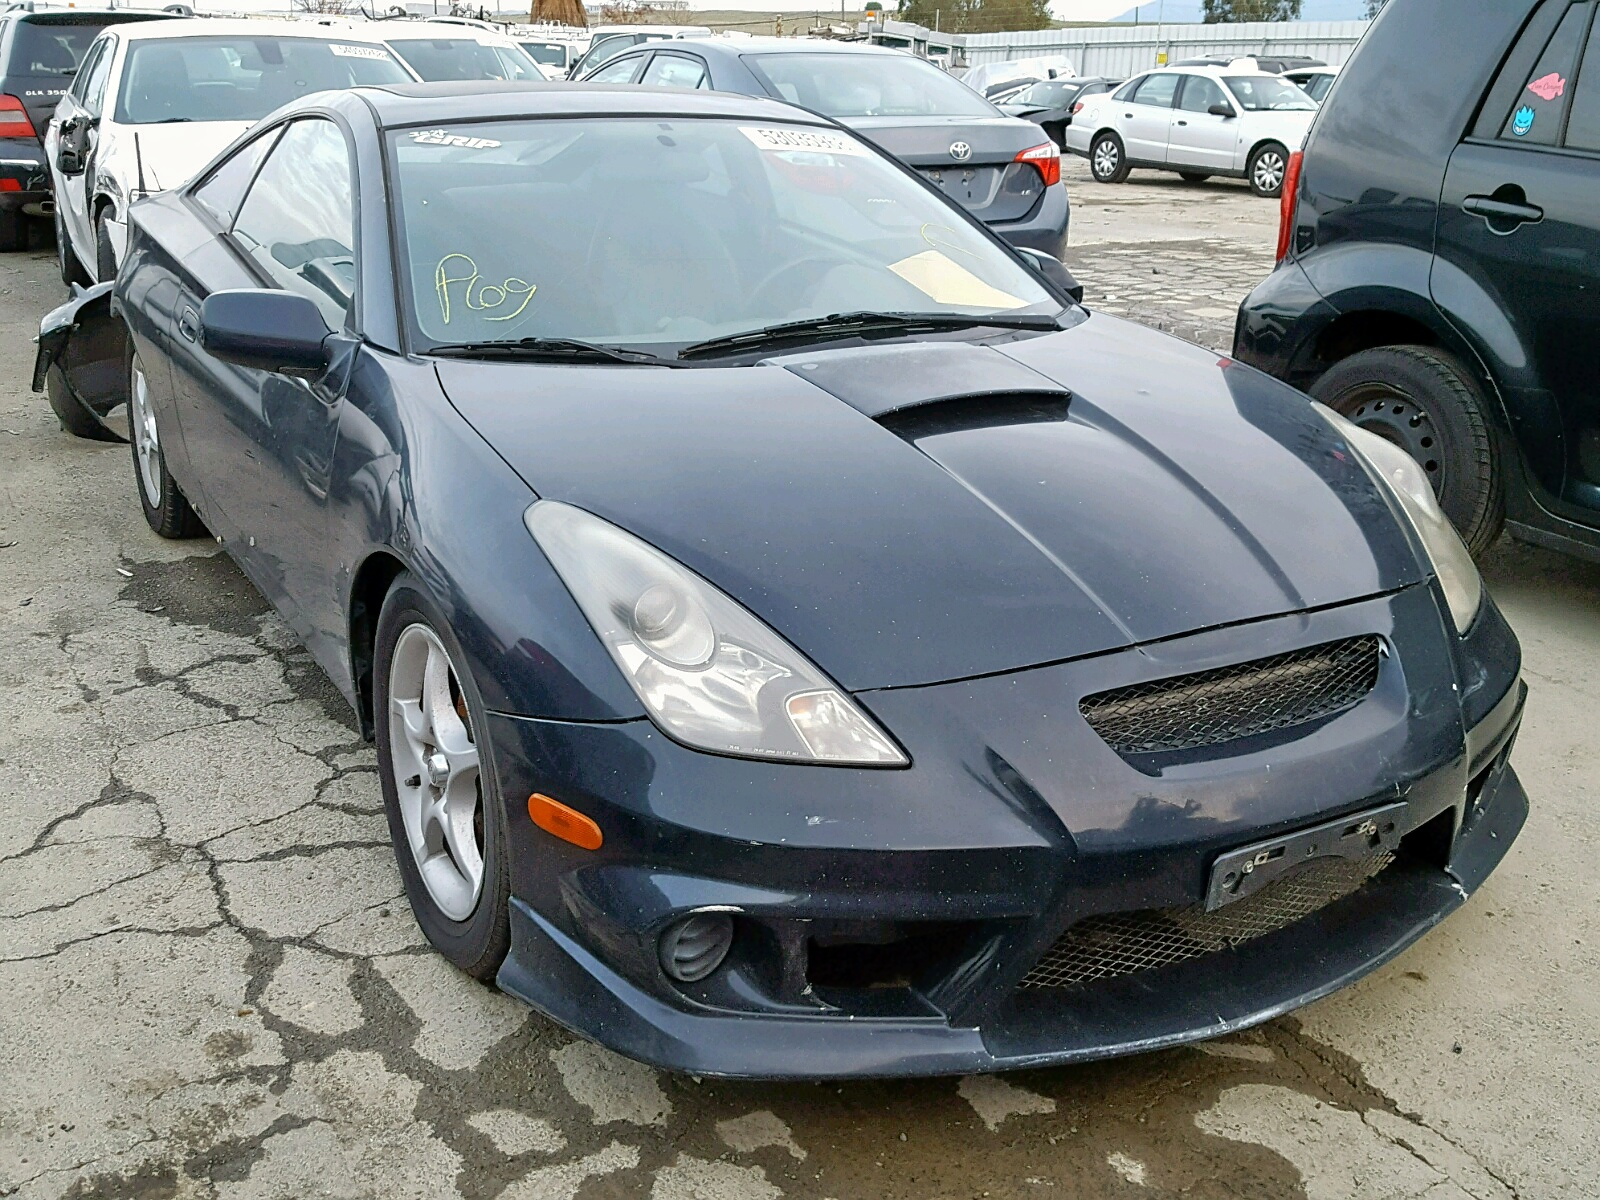 hight resolution of 2000 toyota celica gt 1 8l left view